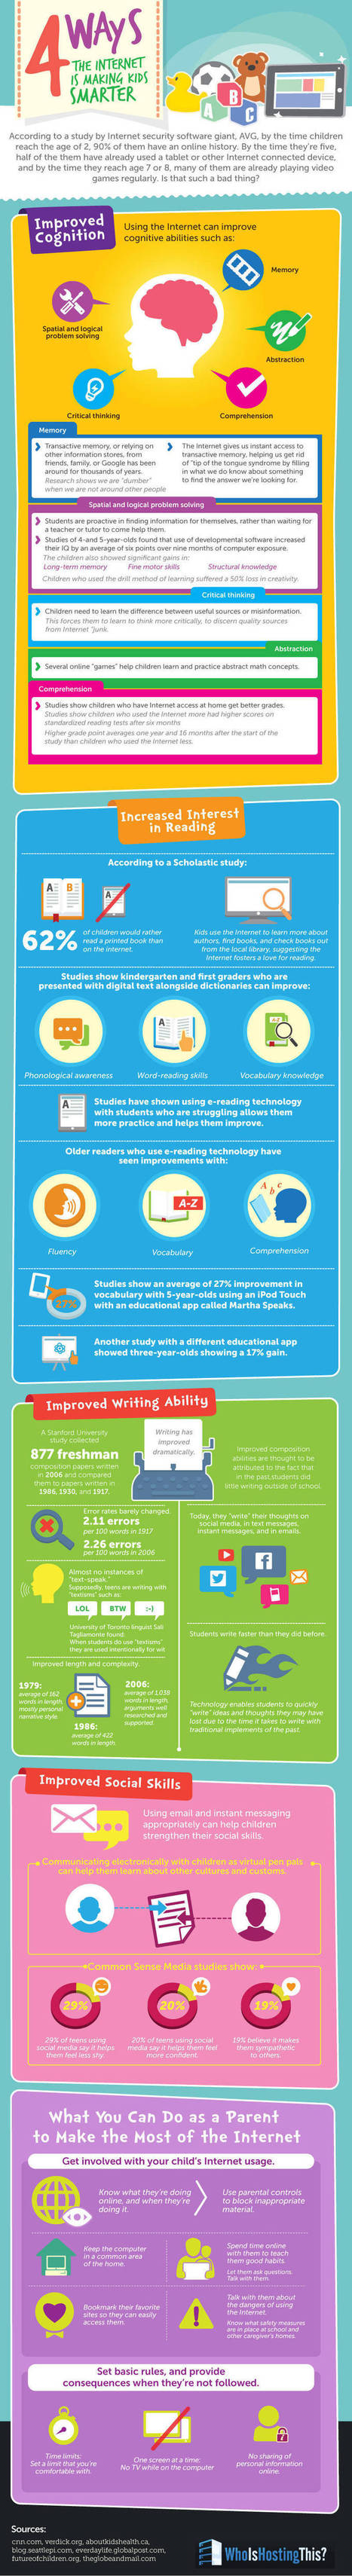 [Infographic] How is Internet Making Kids Smarter? | iGeneration - 21st Century Education | Scoop.it